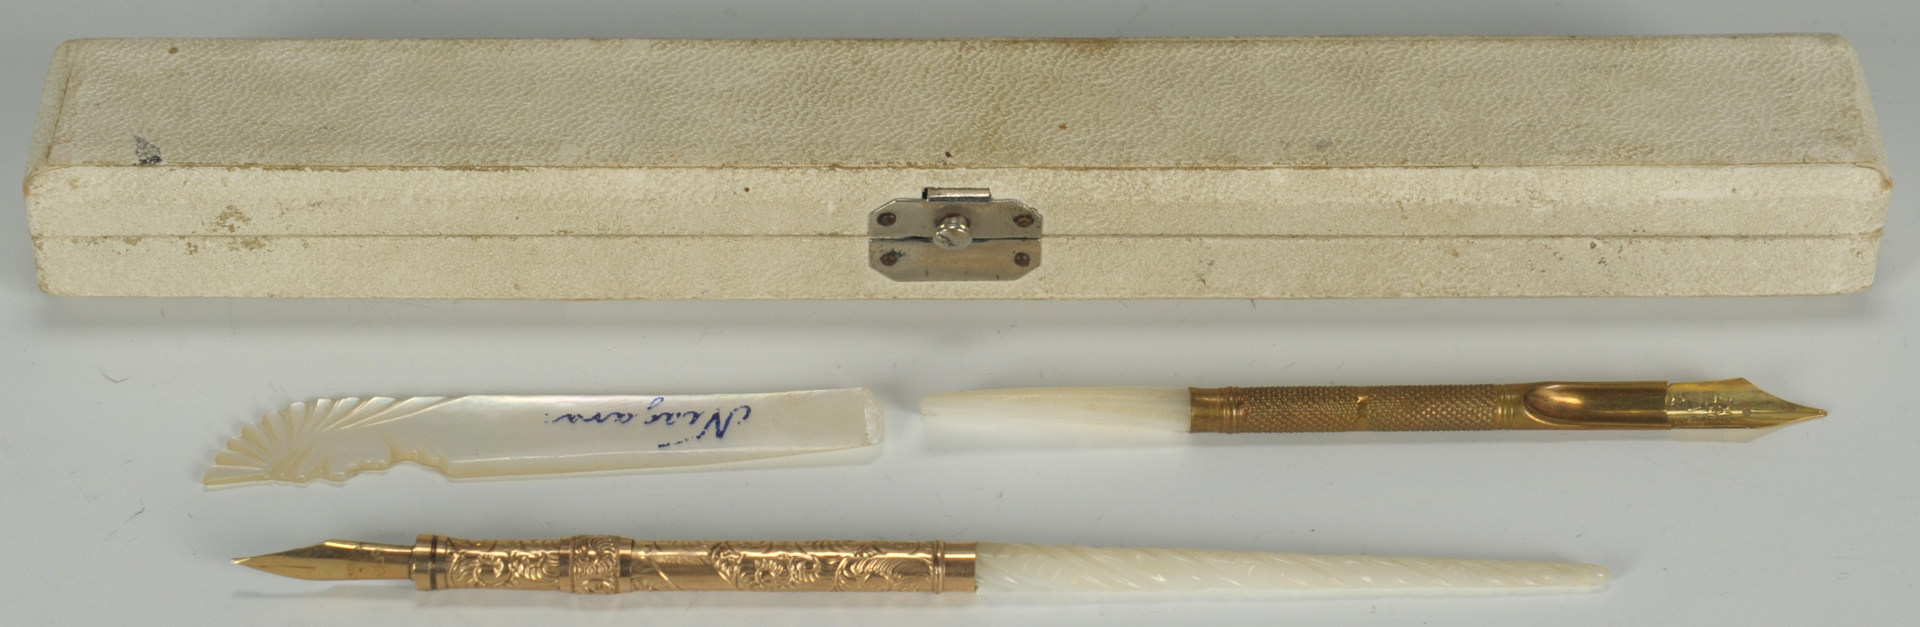 Lot 631: Asst'd silverplate, mother of pearl table items